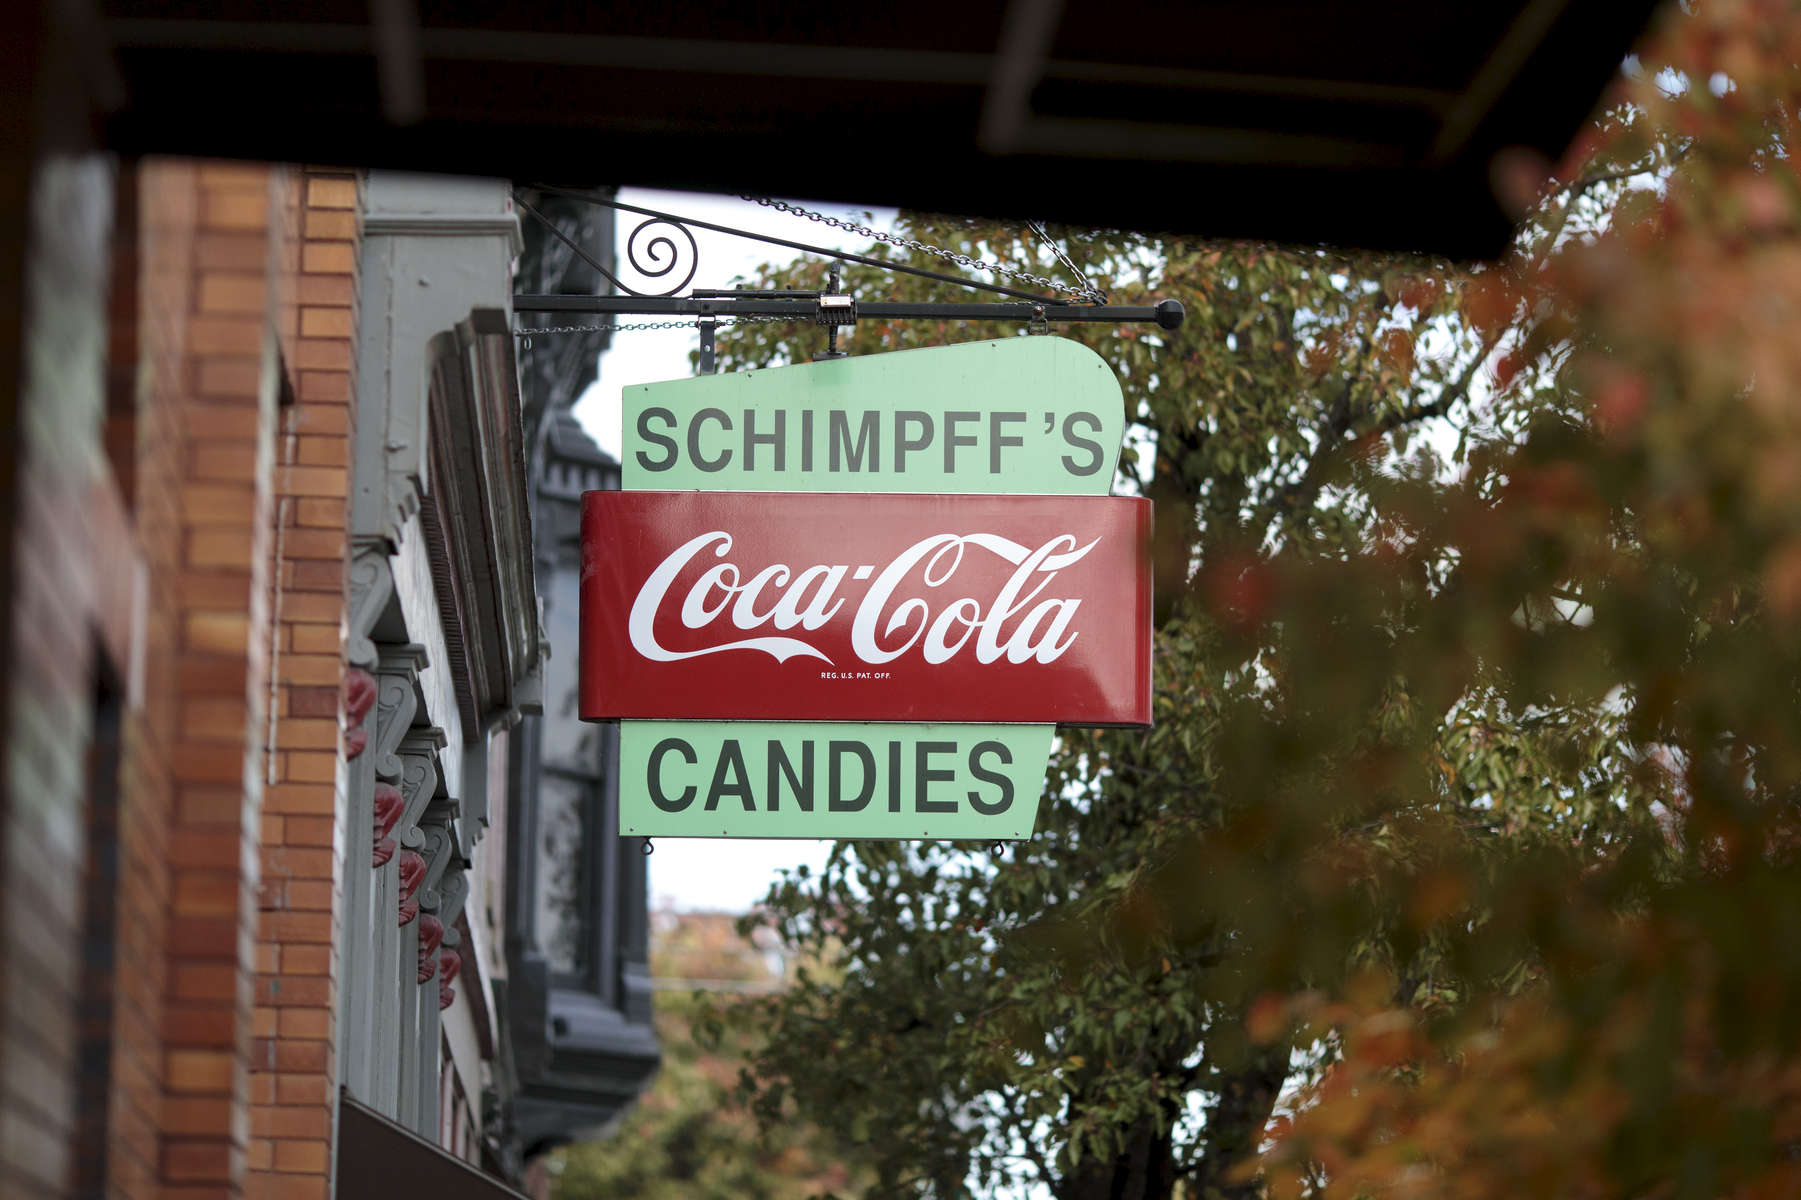 Schimpff's Candy store in Jeffersonville, Indiana. Schimpff's Confectionery is one of the oldest continuously operated family-owned candy businesses in the United States. It opened in 1891 in the location it still occupies.